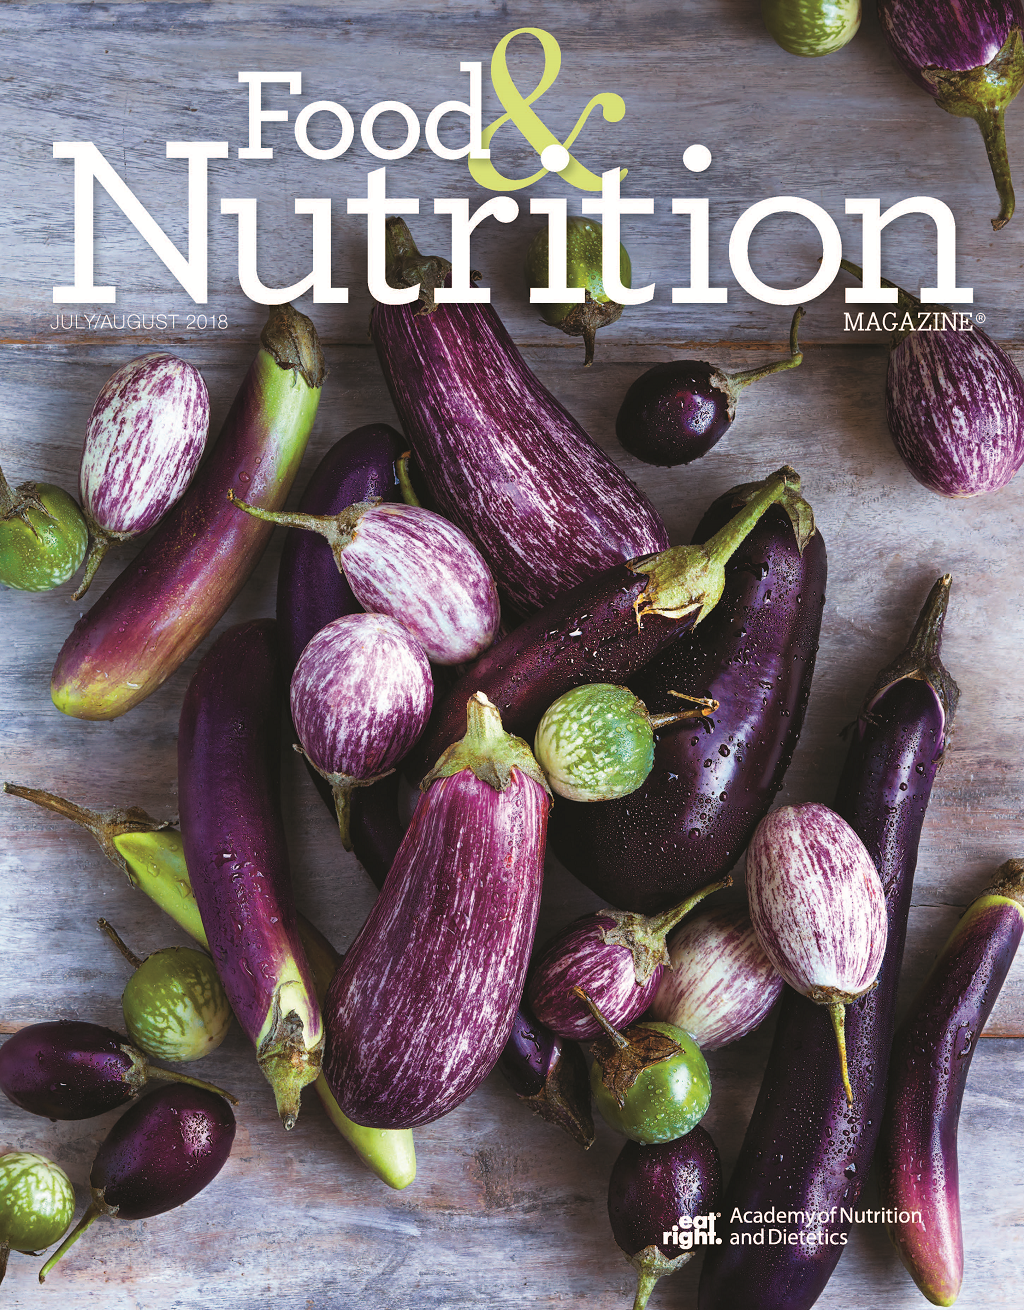 Home food nutrition magazine download the food nutrition mobile app on google play or the app store forumfinder Gallery